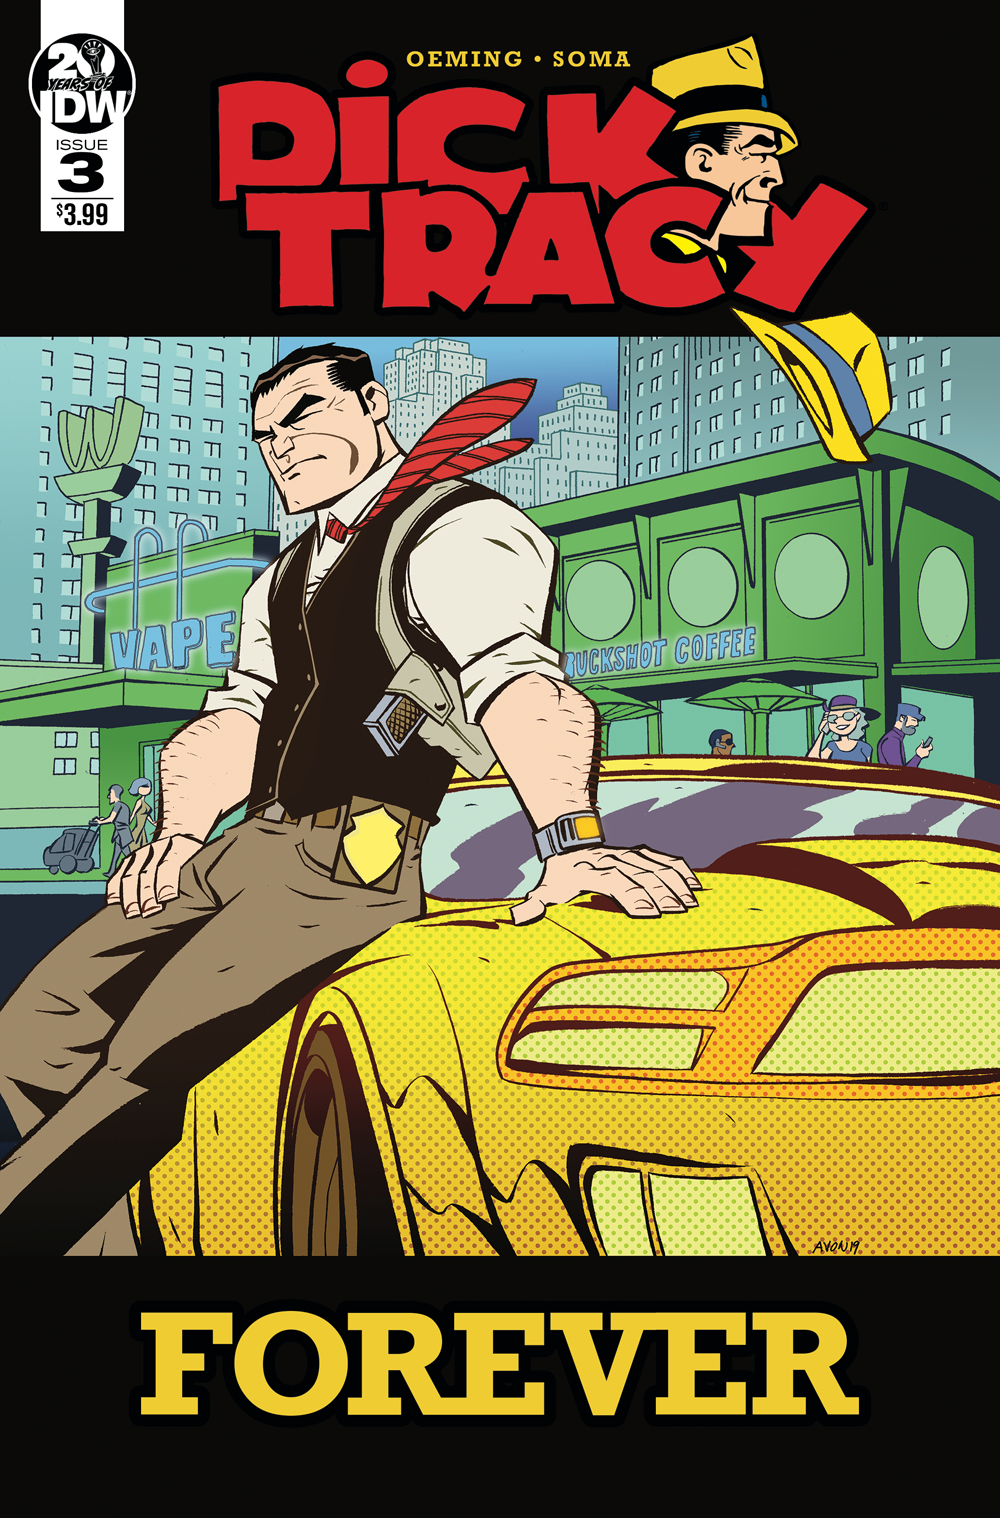 DICK TRACY FOREVER #3 CVR A OEMING